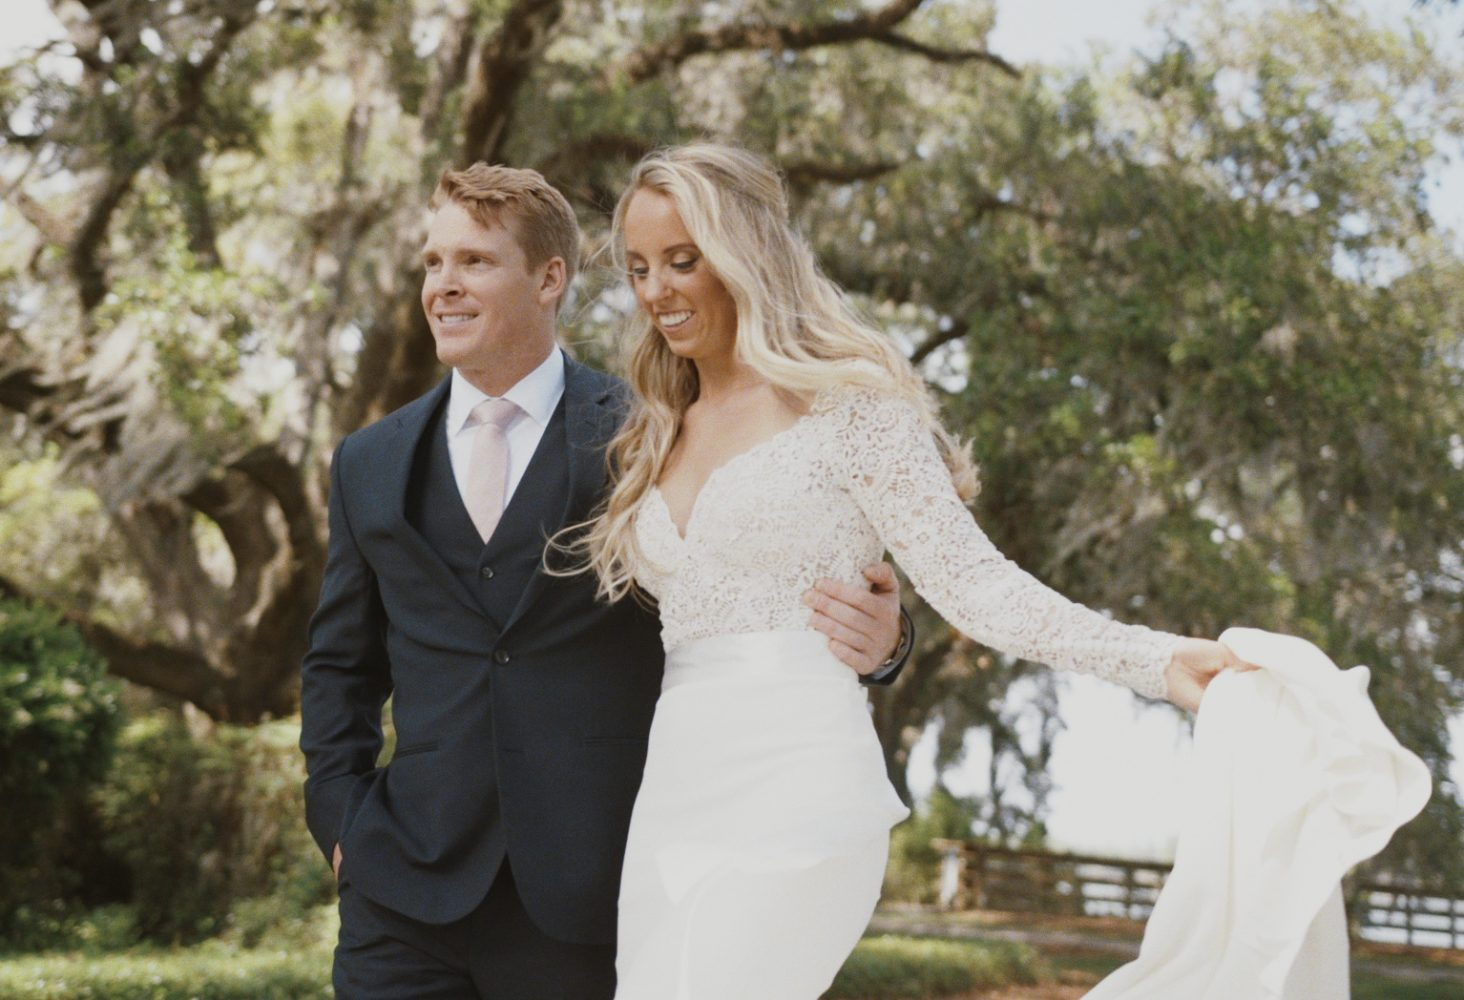 Steve + Olivia | Okatie, South Carolina | Oldfield Golf Club